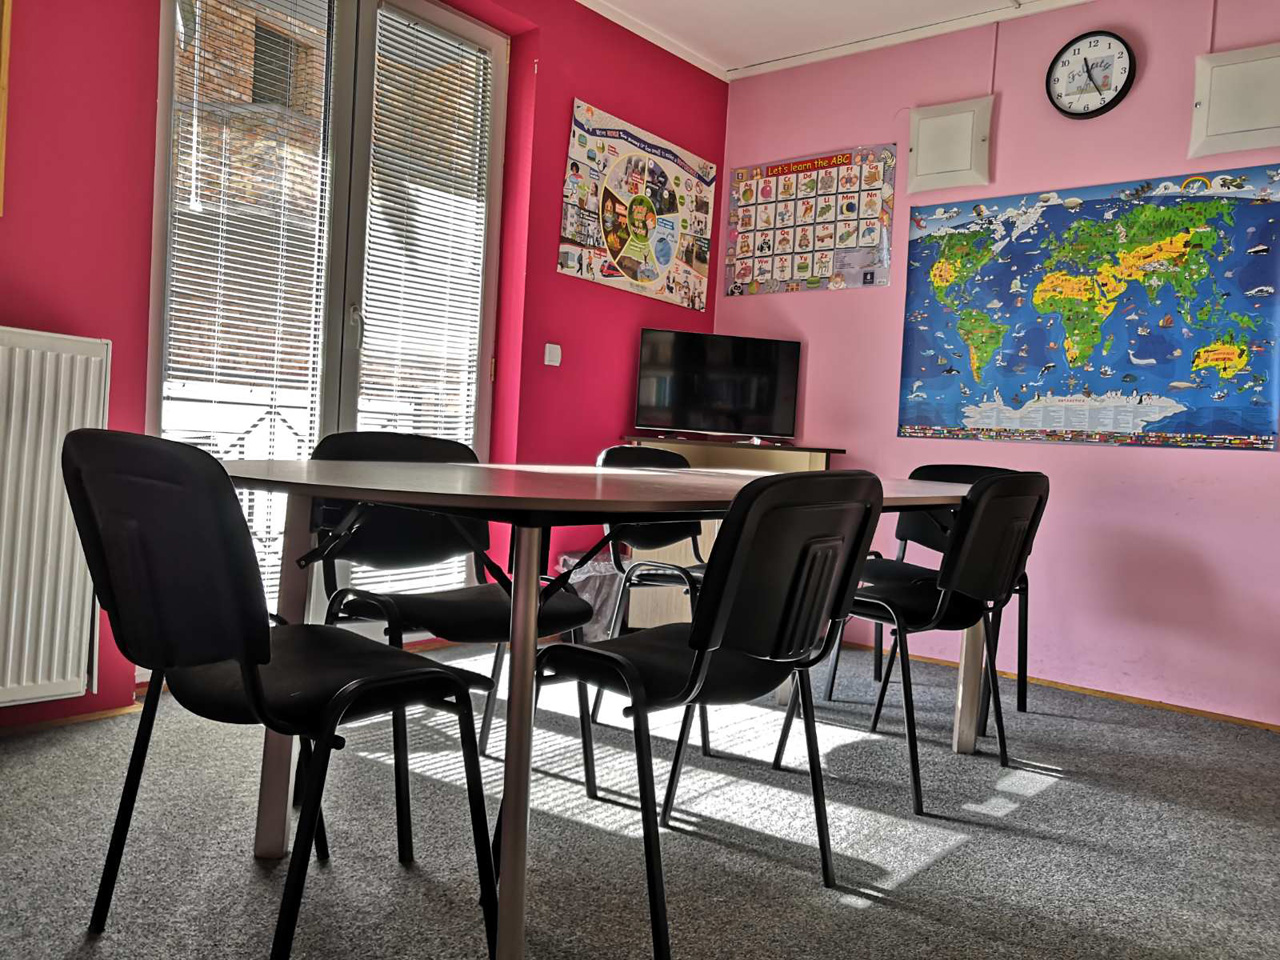 CENTRE FOR ENGLISH LANGUAGE FELICITY Foreign languages schools Beograd